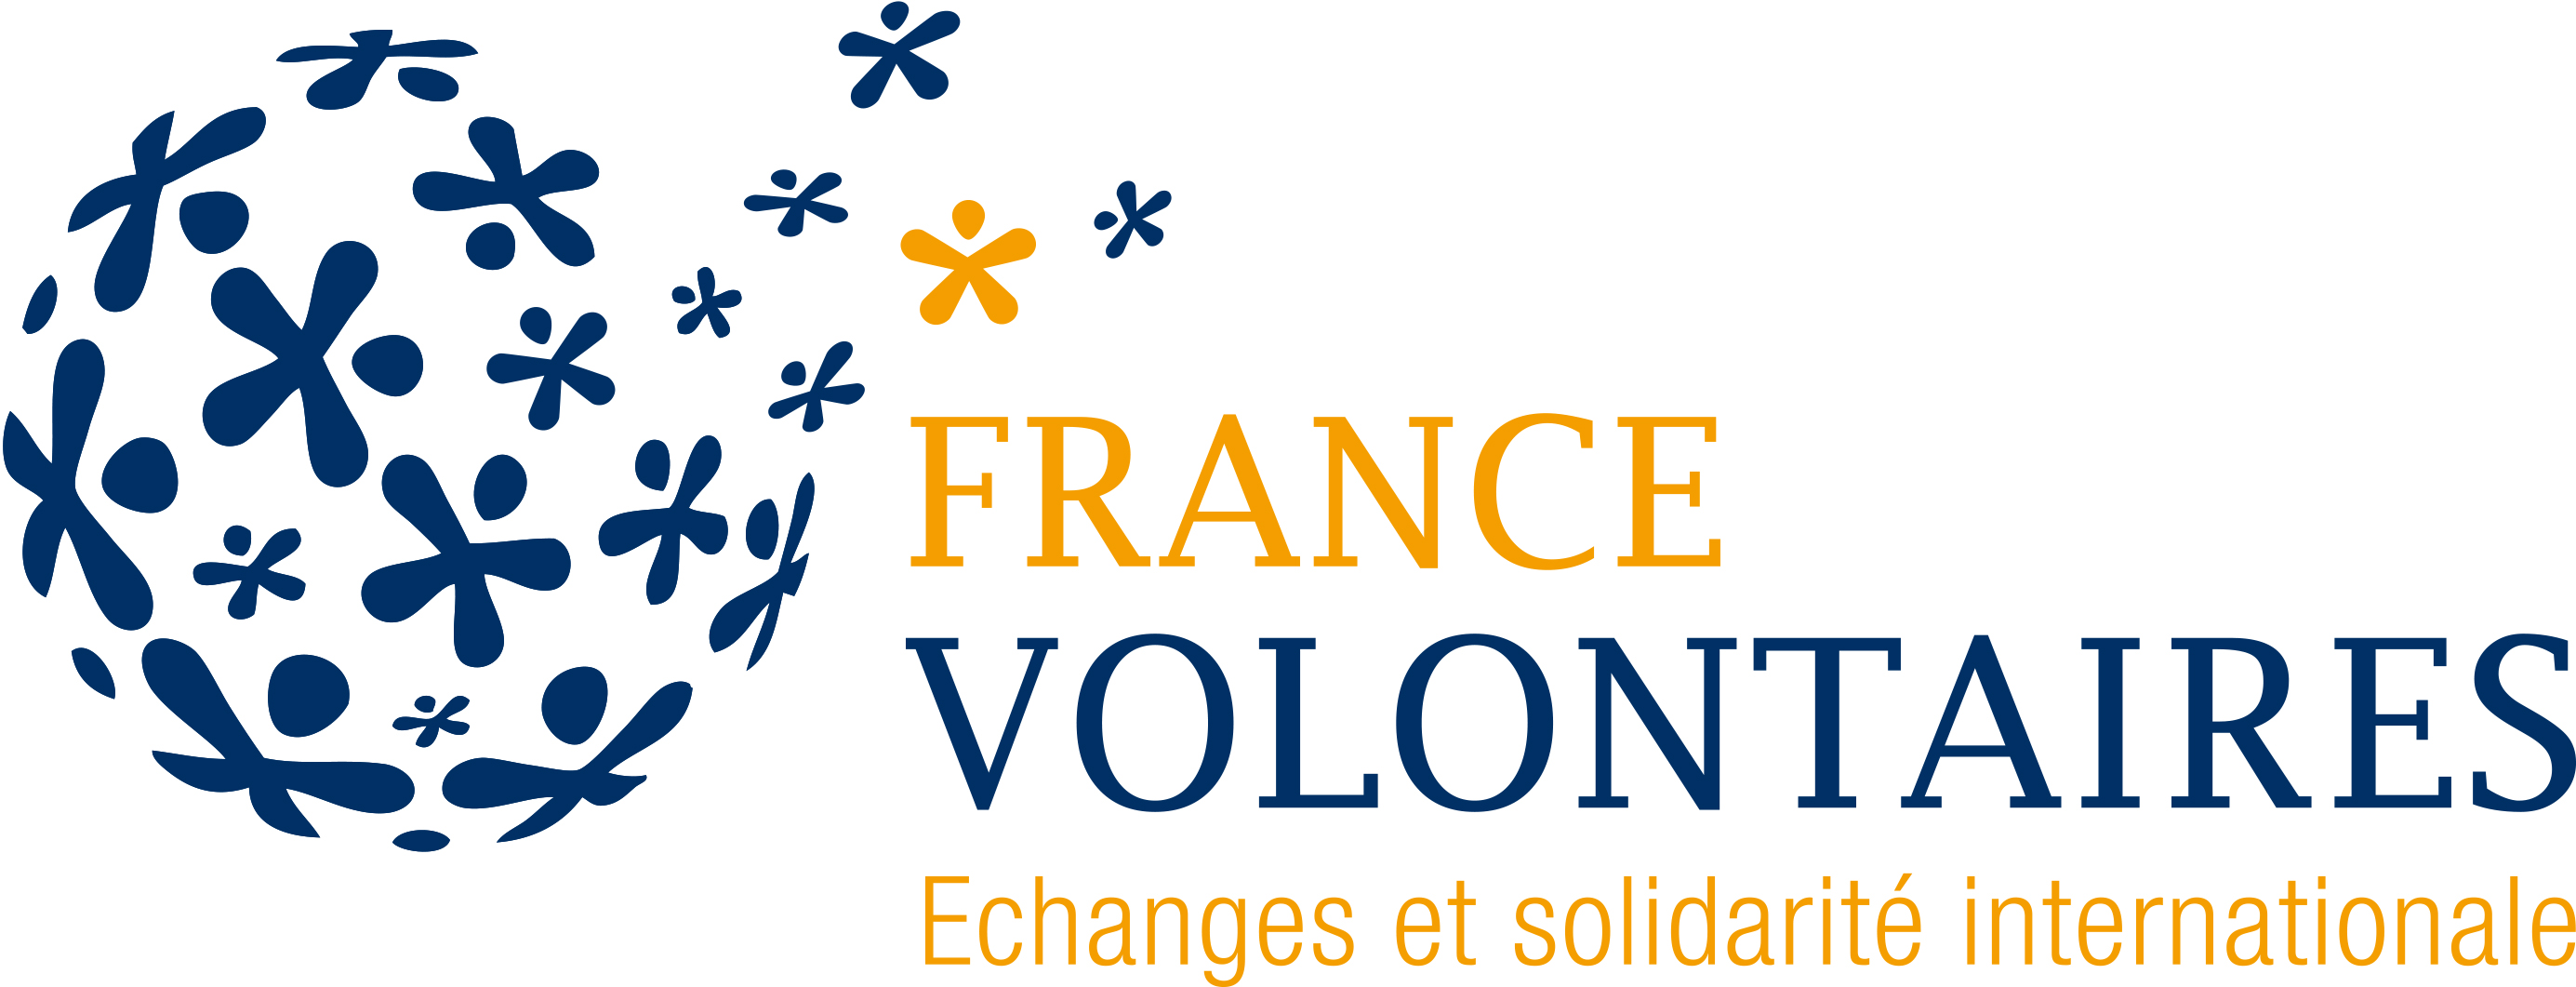 FranceVolontaires